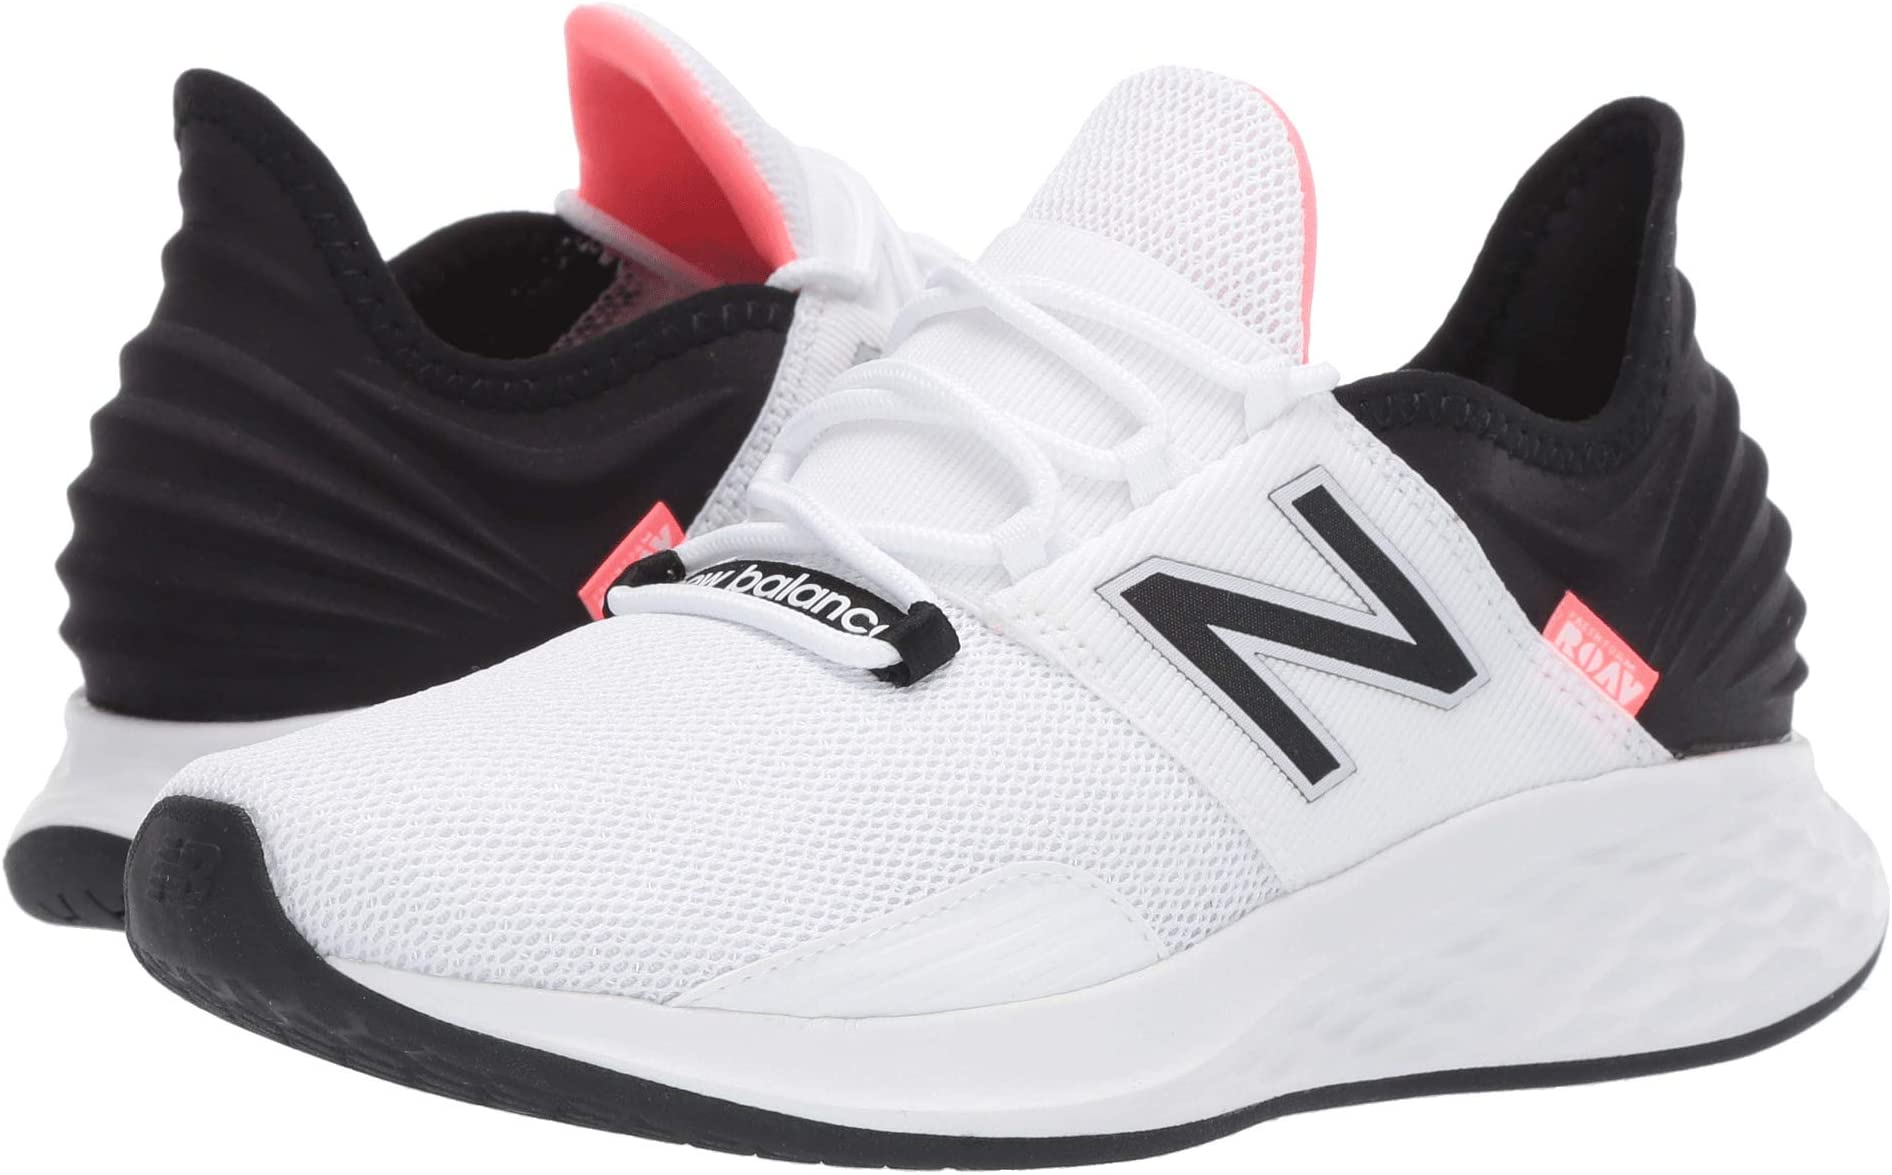 af79fa2c56df3 New Balance Shoes, Clothing, Activewear, Socks | Zappos.com